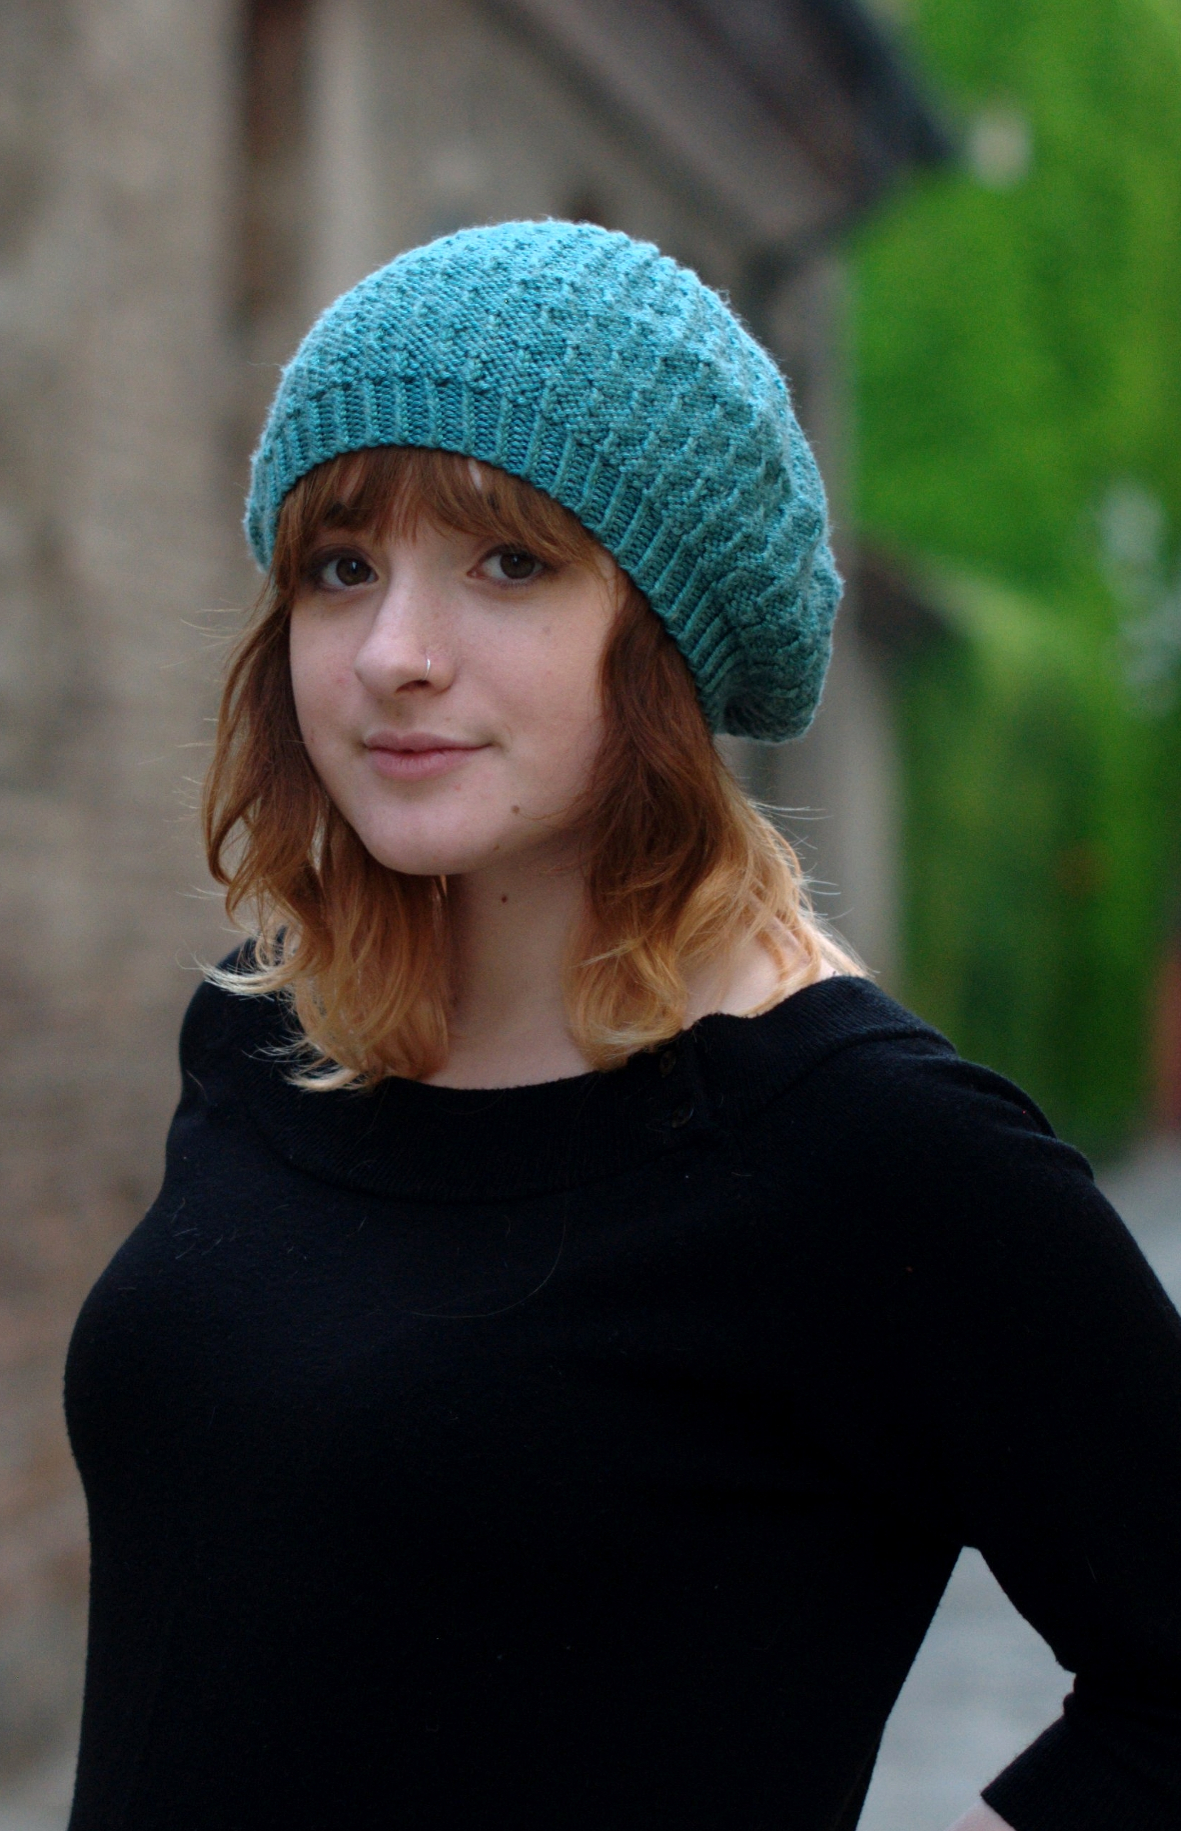 Annular textured beret knitting pattern